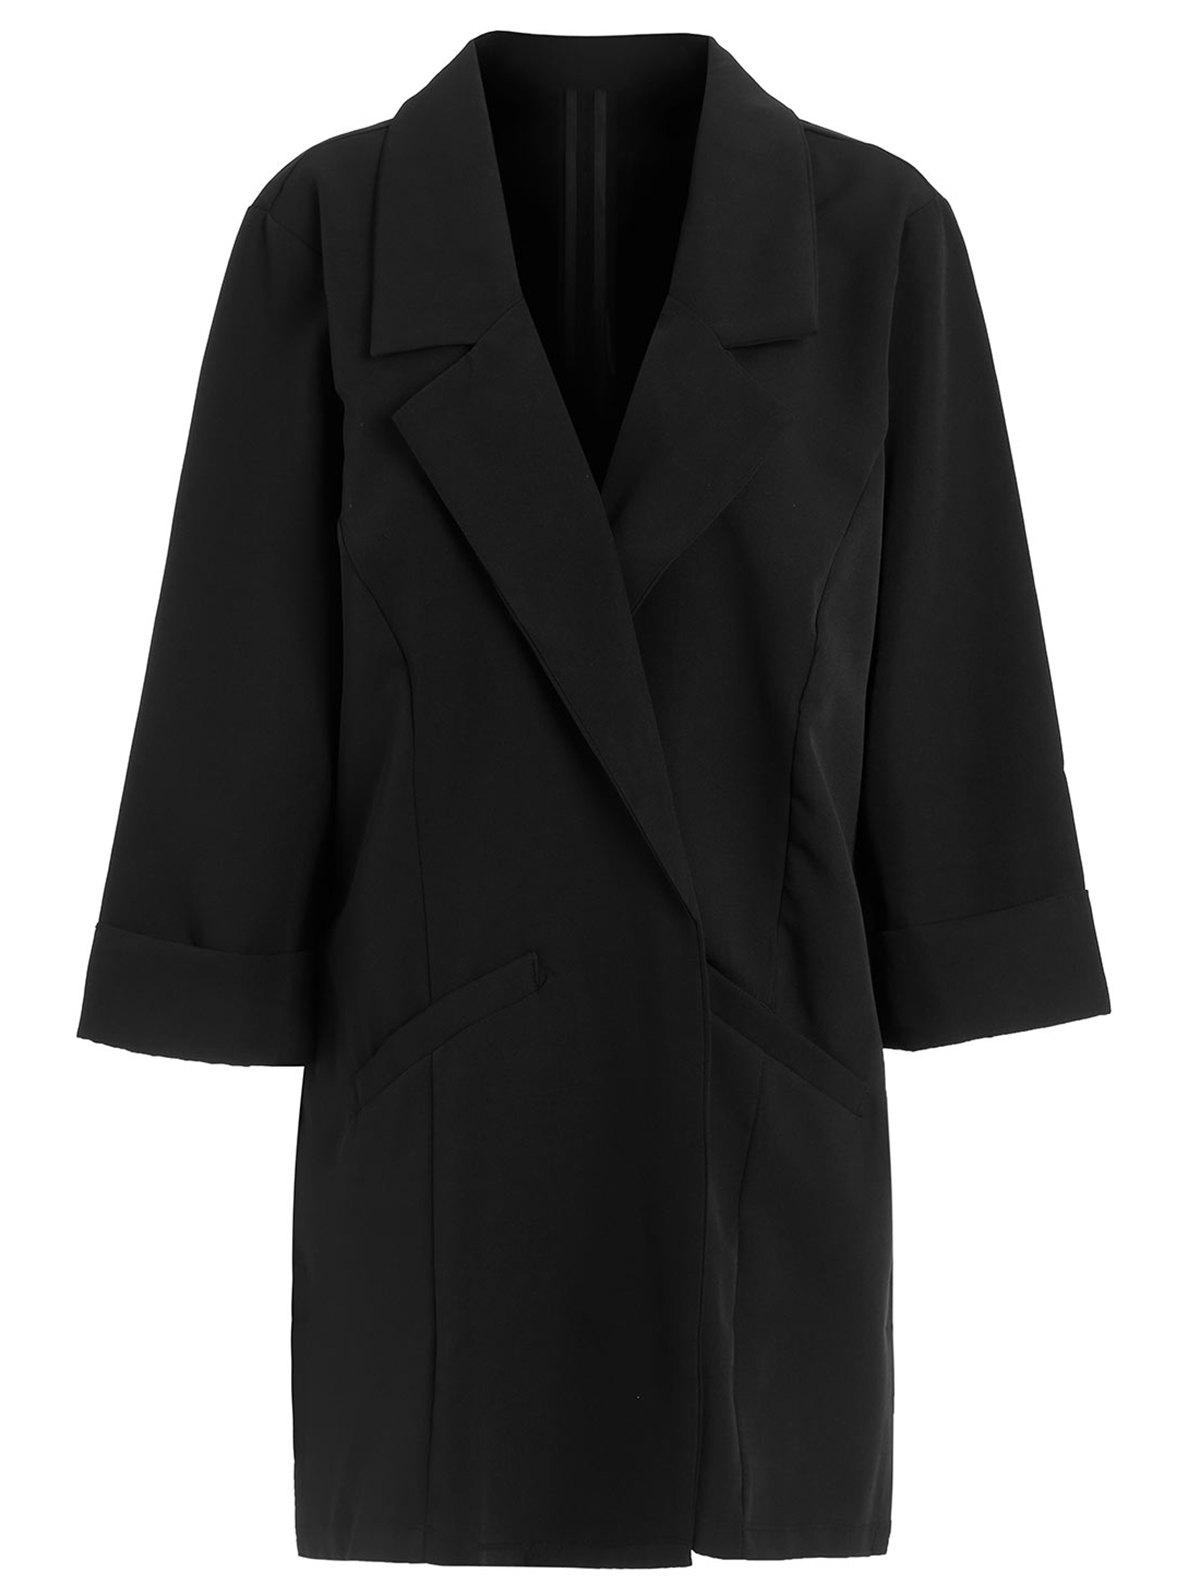 Latest Cuffed Sleeve Open Front Lapel Coat